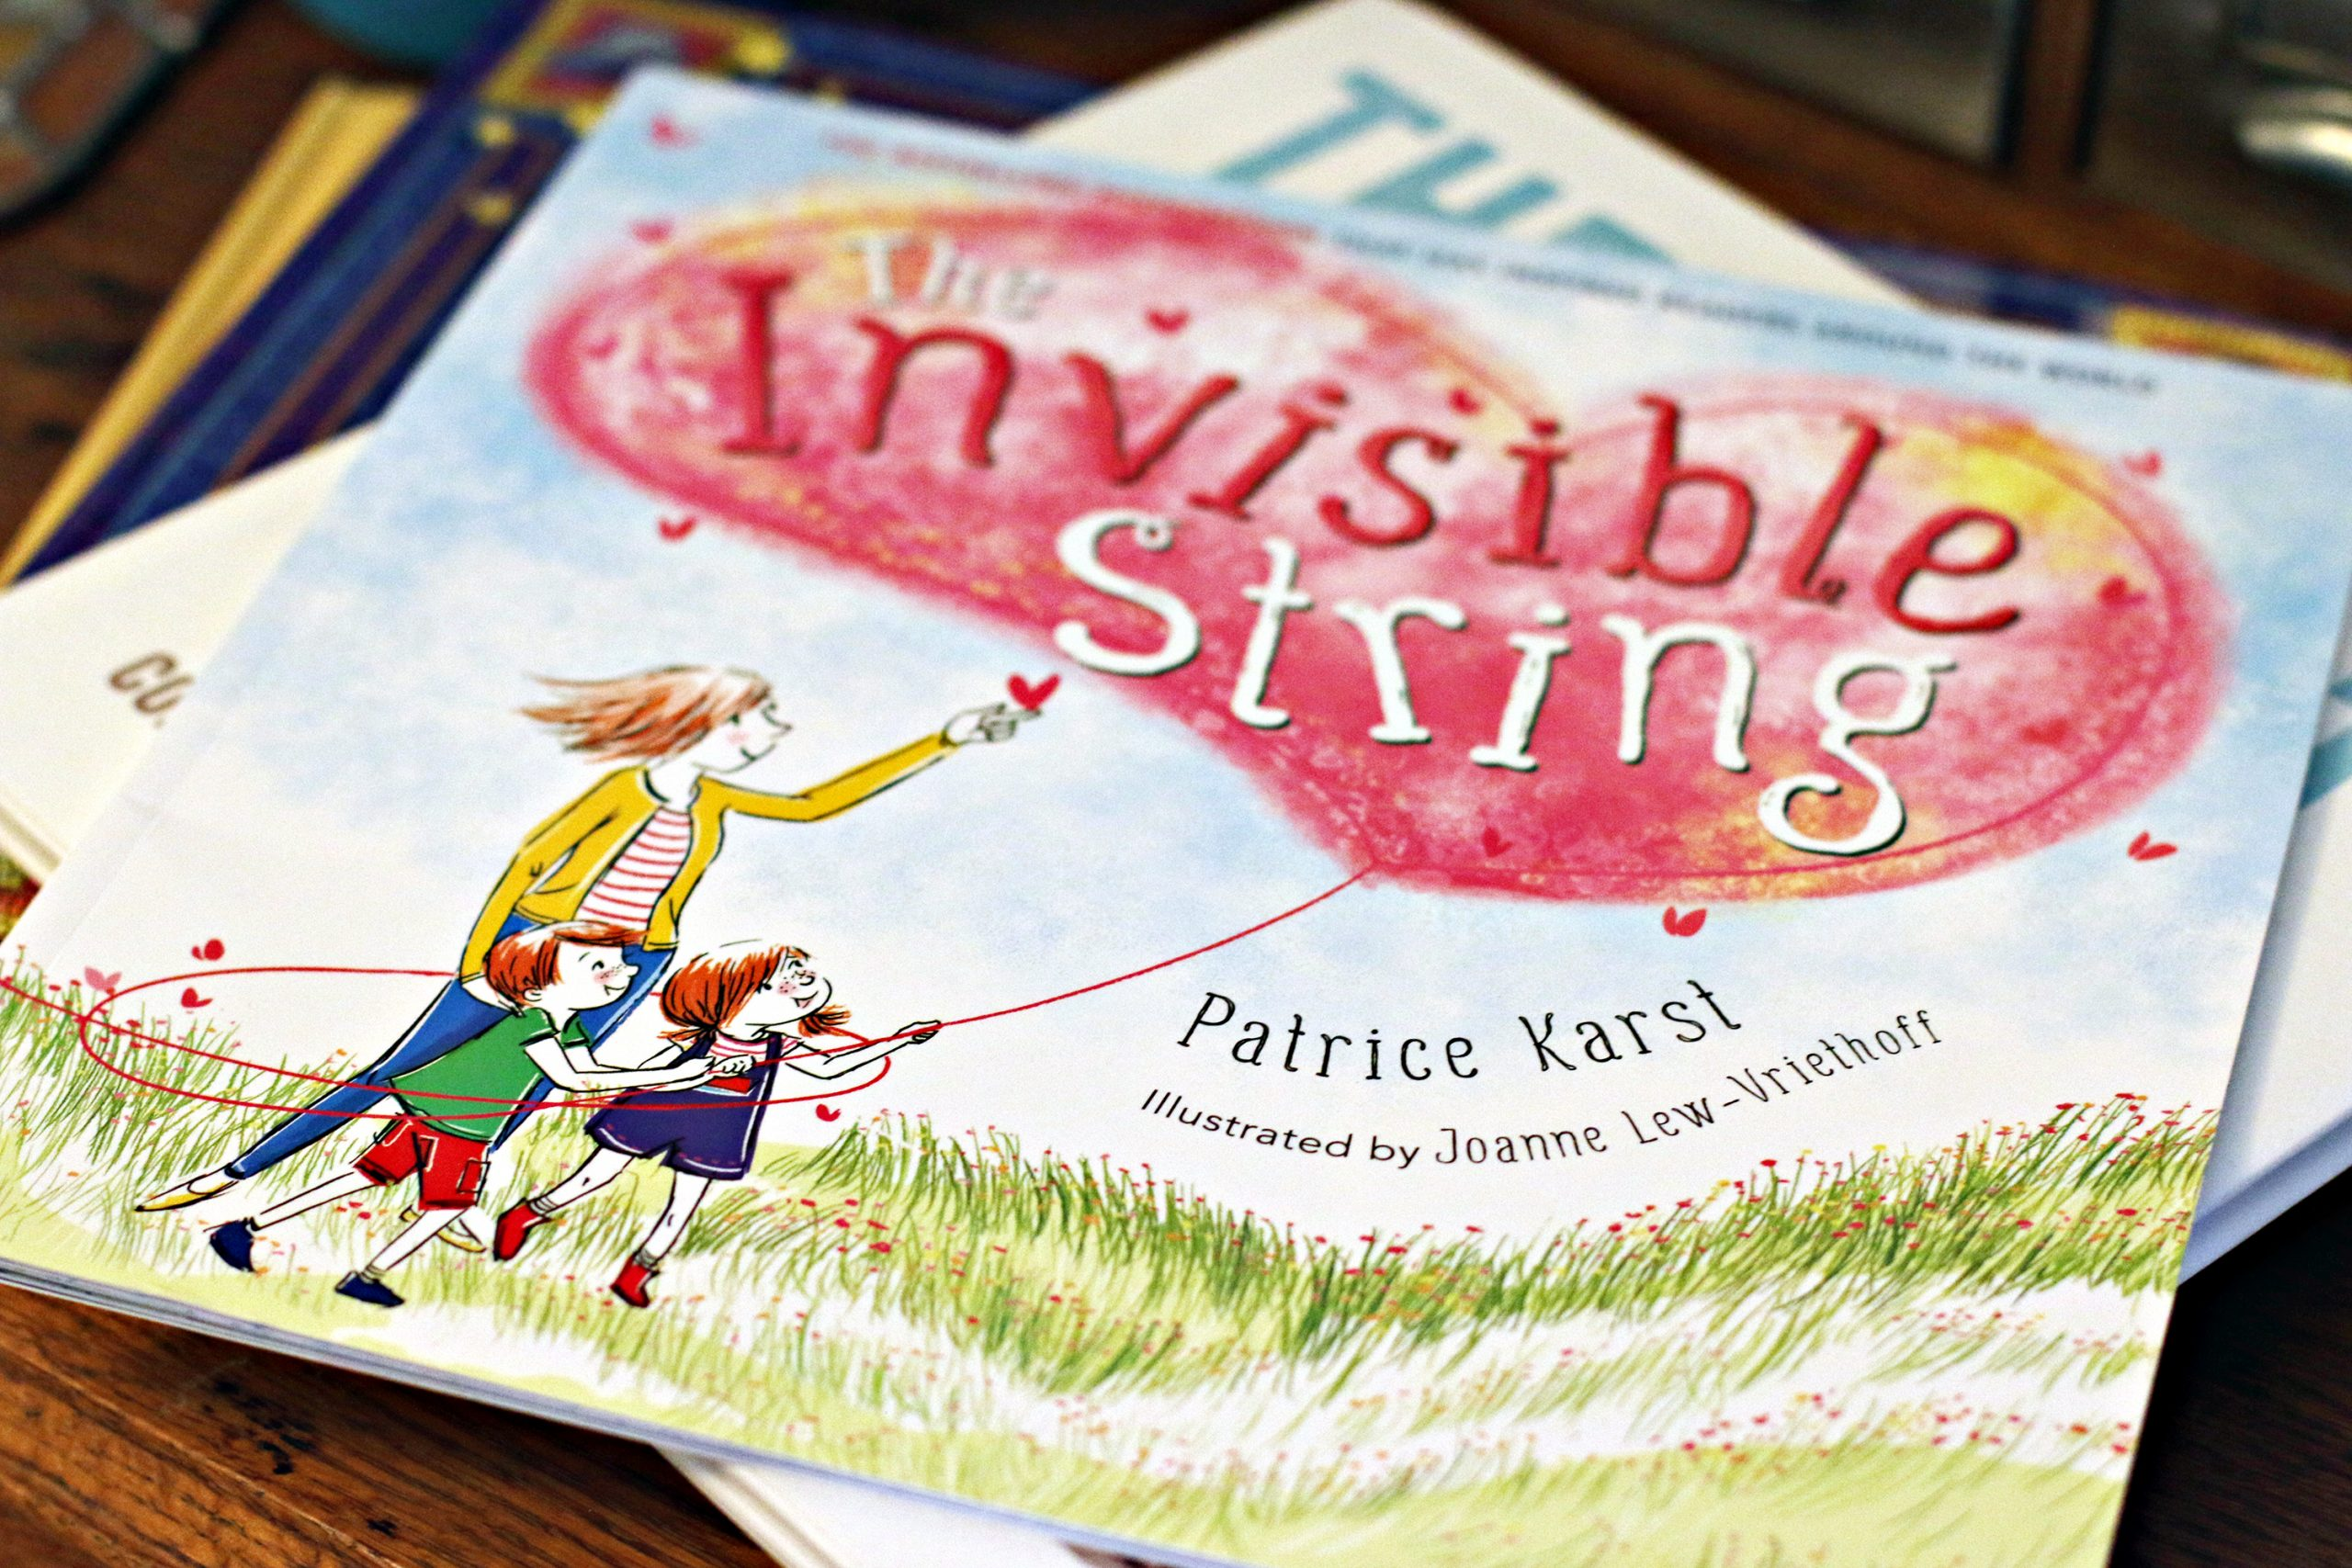 A close-up of the children's book, The Invisible String, by Patrice Karst, sitting on a stack of other books.